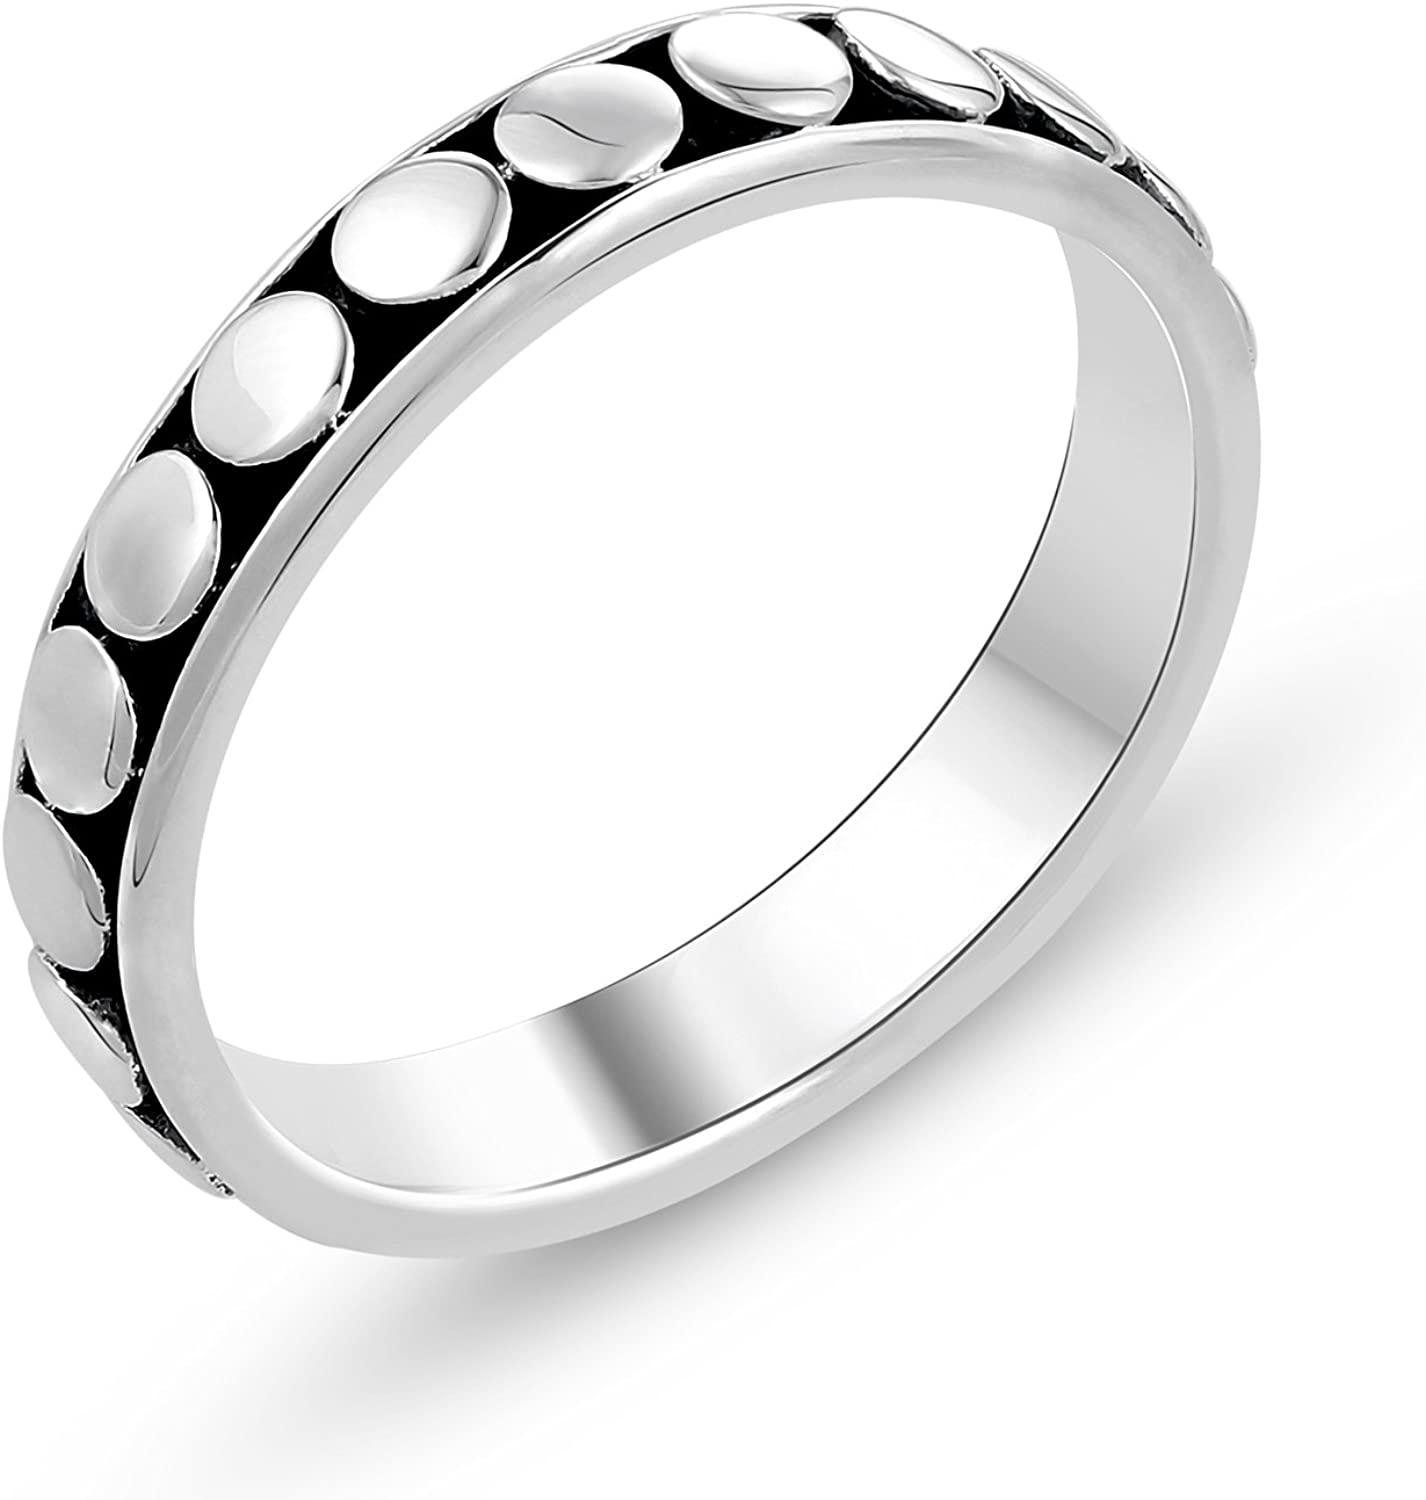 STELLAR DESIGNS Hypoallergenic 925 Sterling Silver Oxidized Wedding Band Ring | Valentine Gifts for Her